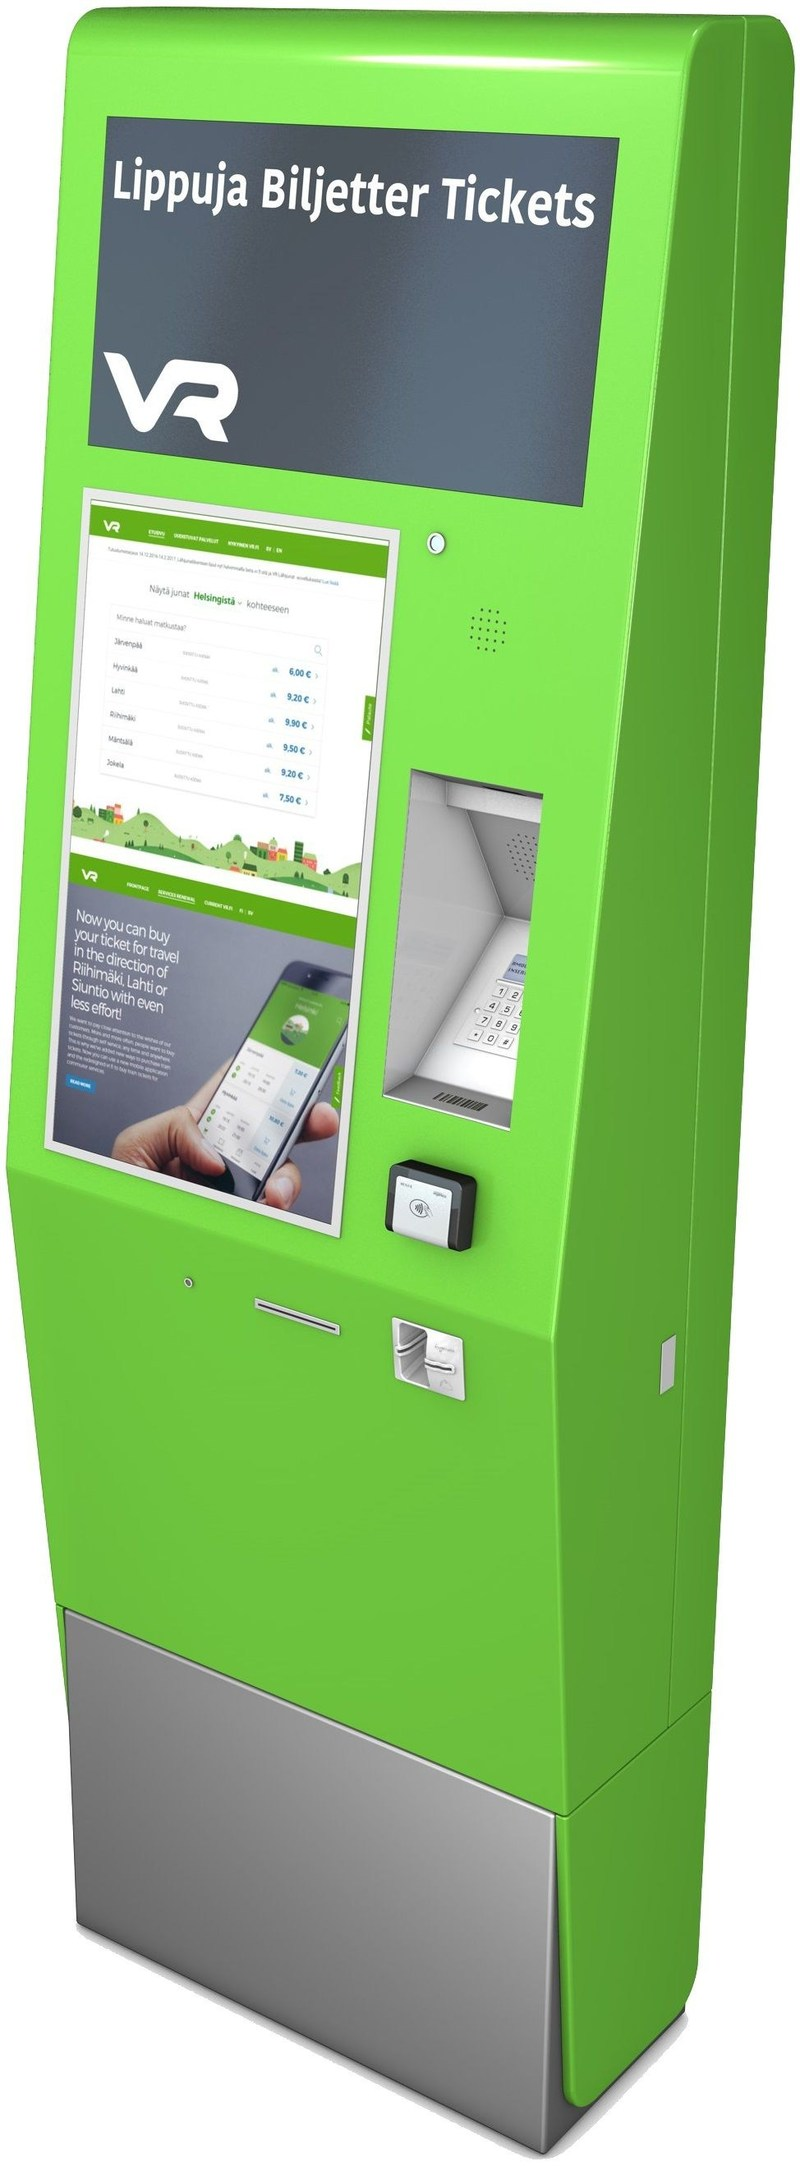 Finland's railway network, VR Group, upgrades its ticketing infrastructure with 130 Conduent Expert 6000 Ticket Vending Machines. (PRNewsfoto/Conduent)